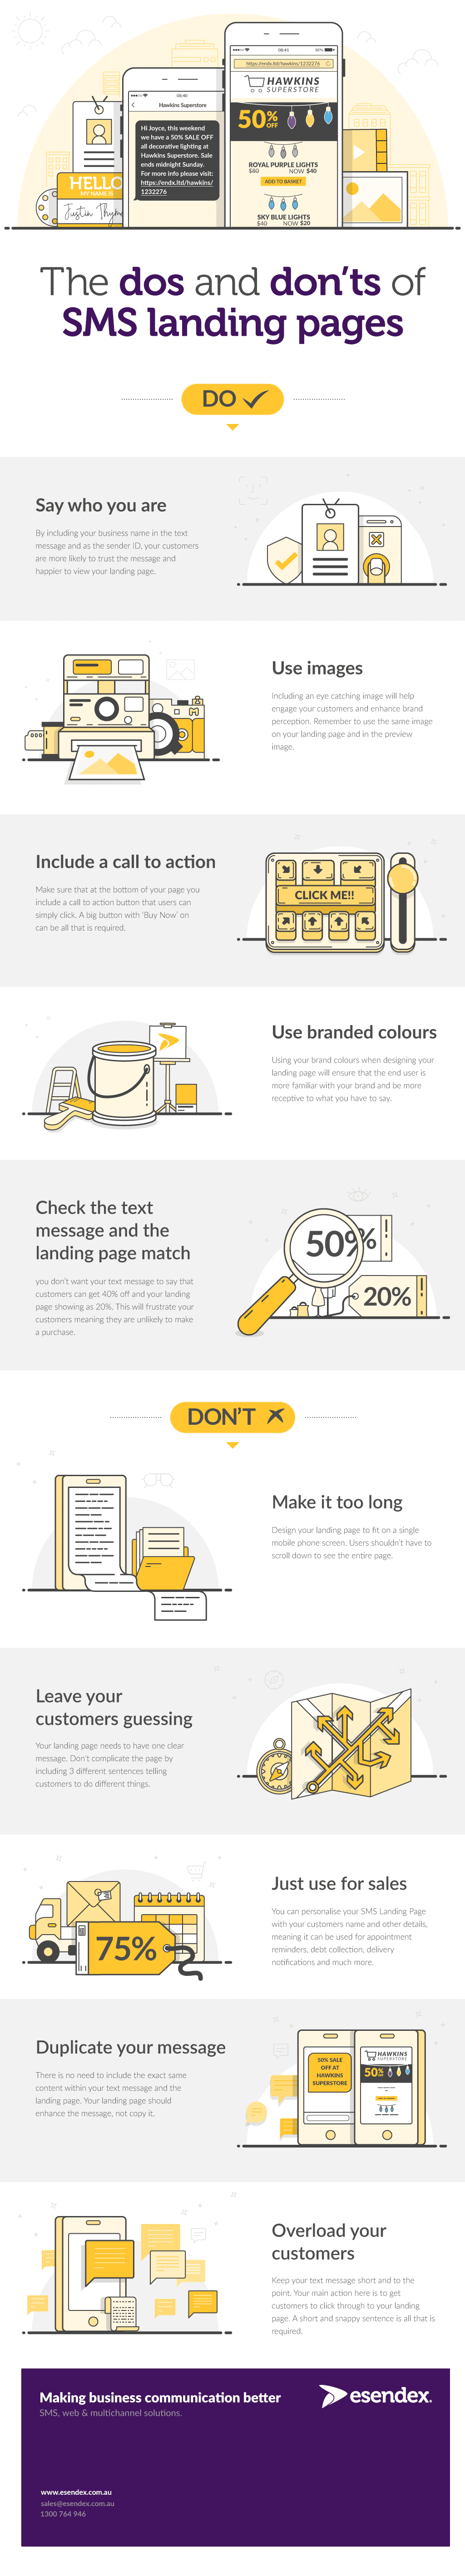 Dos and Don'ts of SMS Landing Pages